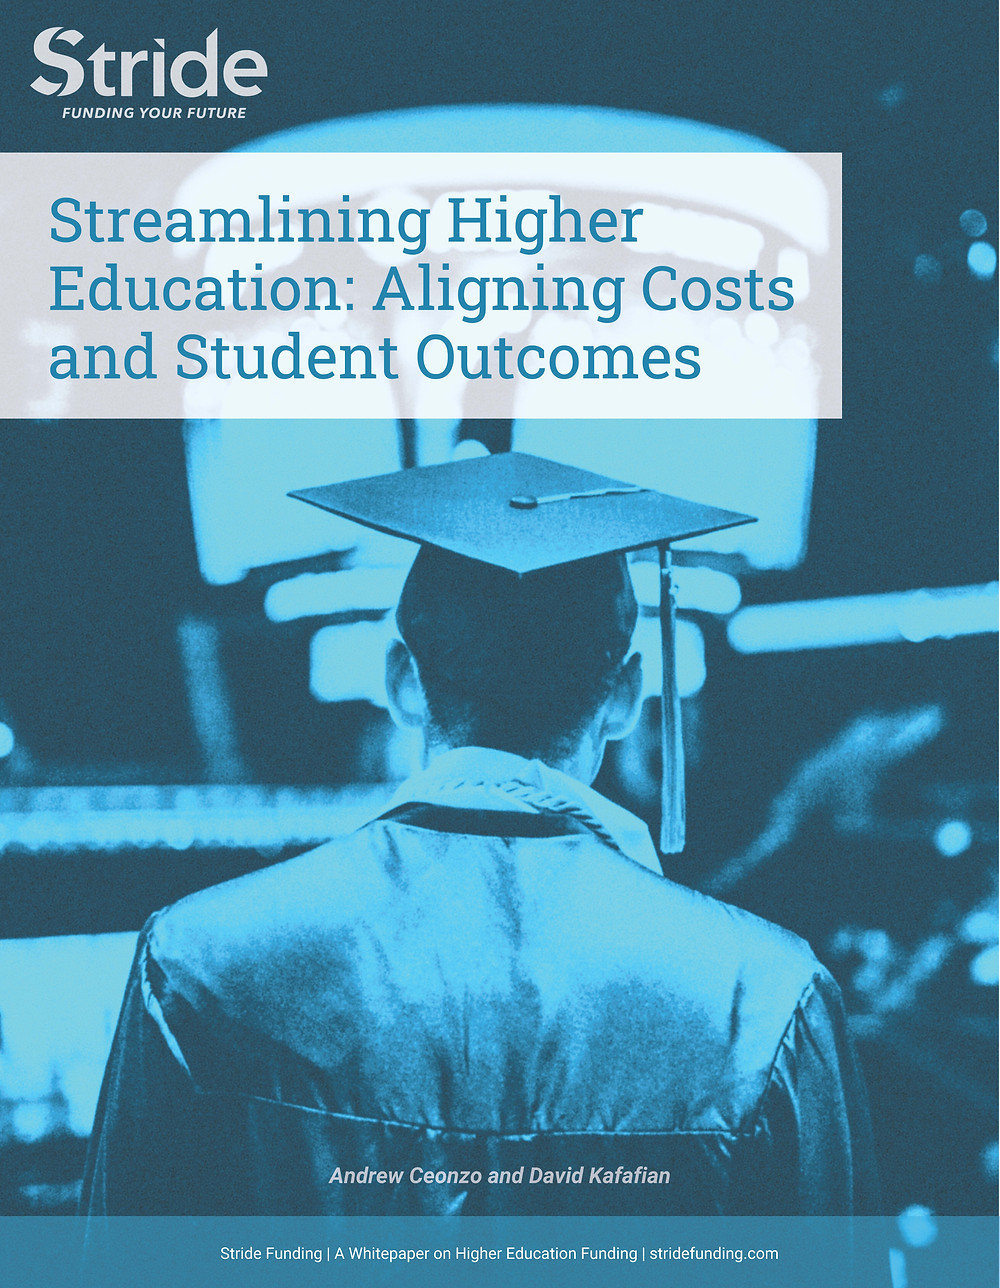 Whitepaper - Streamlining Higher Education: Aligning Costs and Student Outcomes